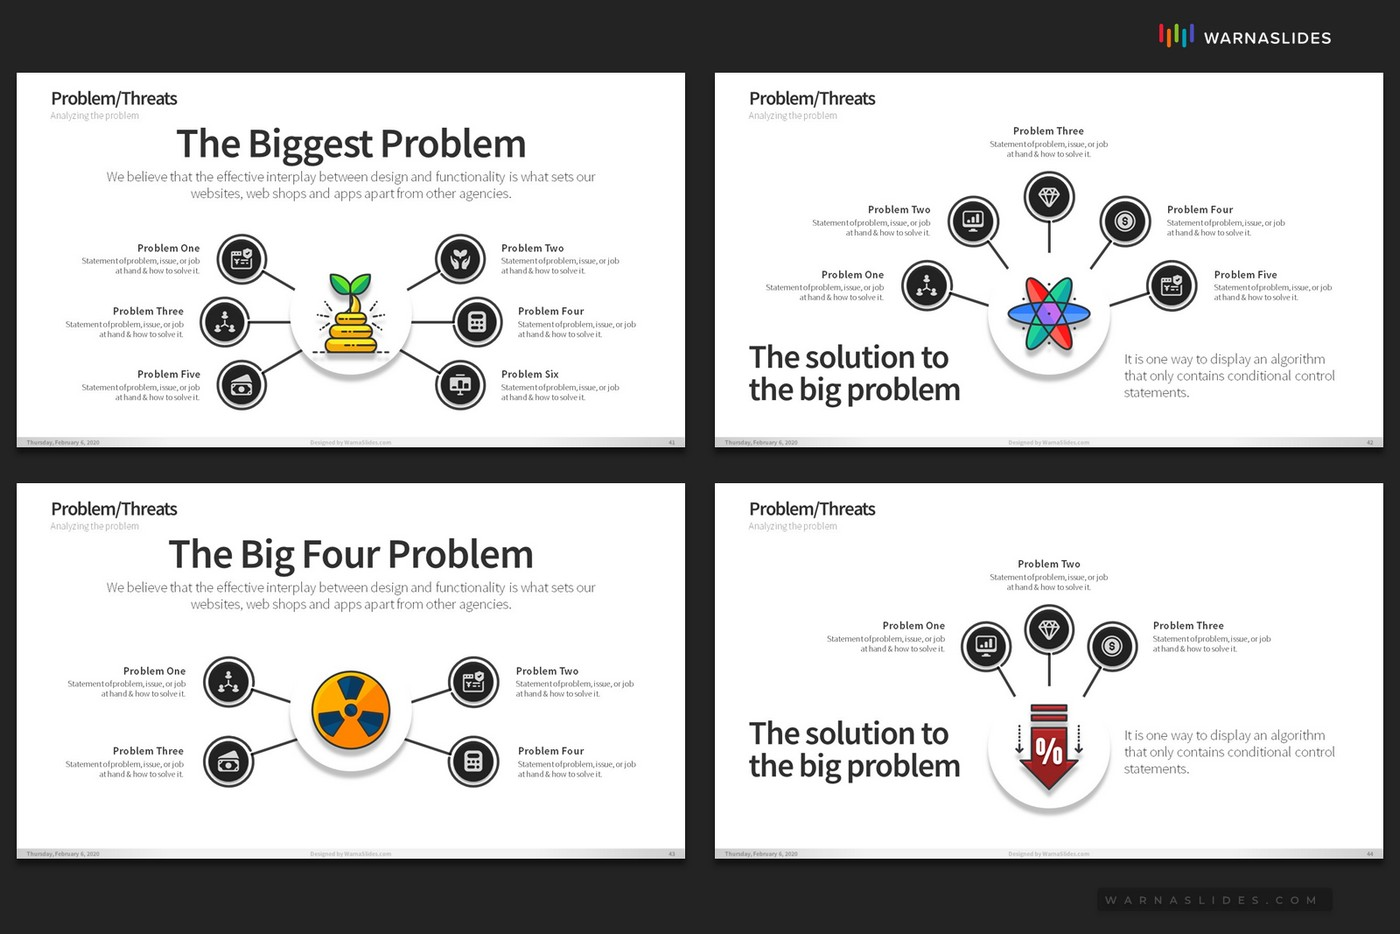 Problem-Threats-Risk-Management-Weaknesses-Services-Brainstorm-PowerPoint-Template-2020-for-Business-Pitch-Deck-Professional-Creative-Presentation-by-Warna-Slides-014